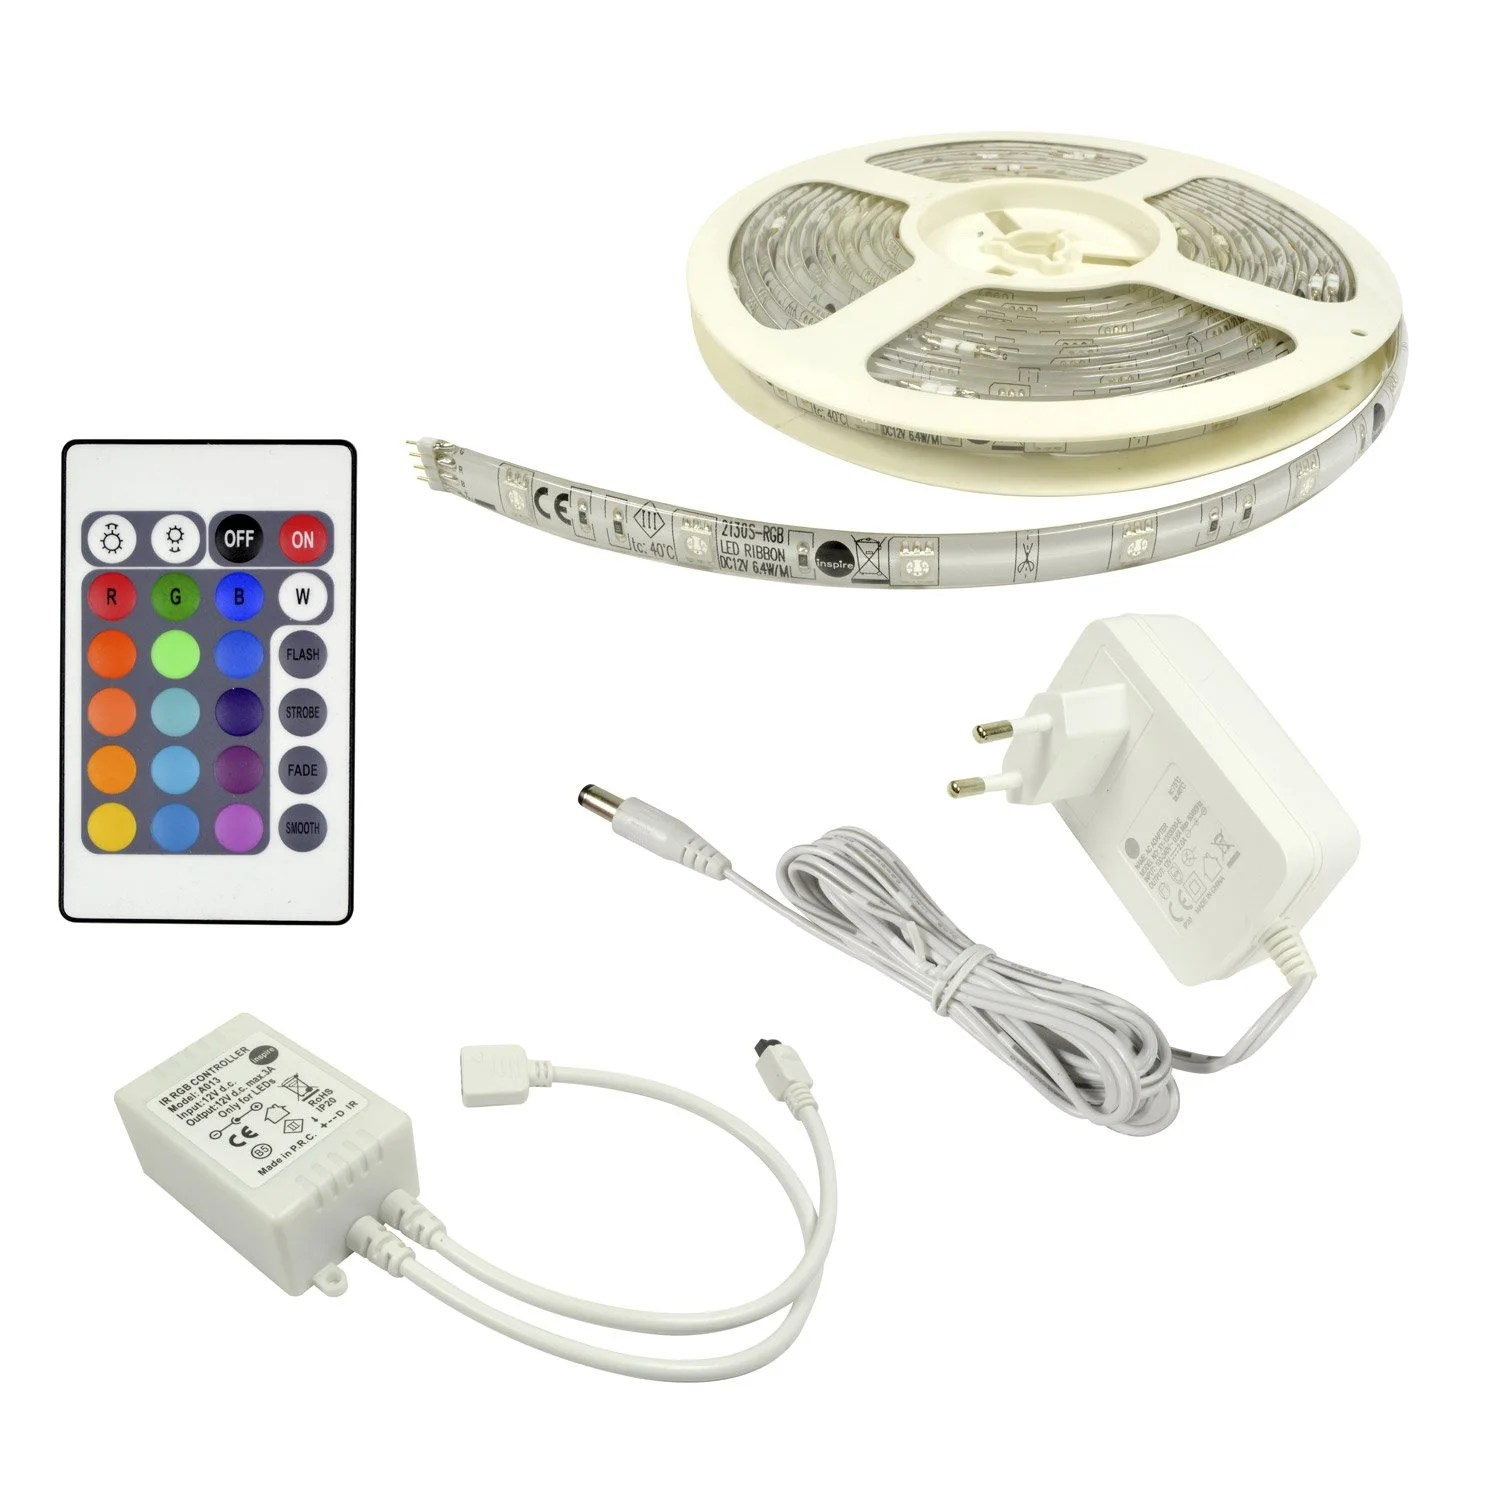 Ruban Led Leroy Merlin Kit Ruban Led 5m Multicolore Flexled Inspire Leroy Merlin